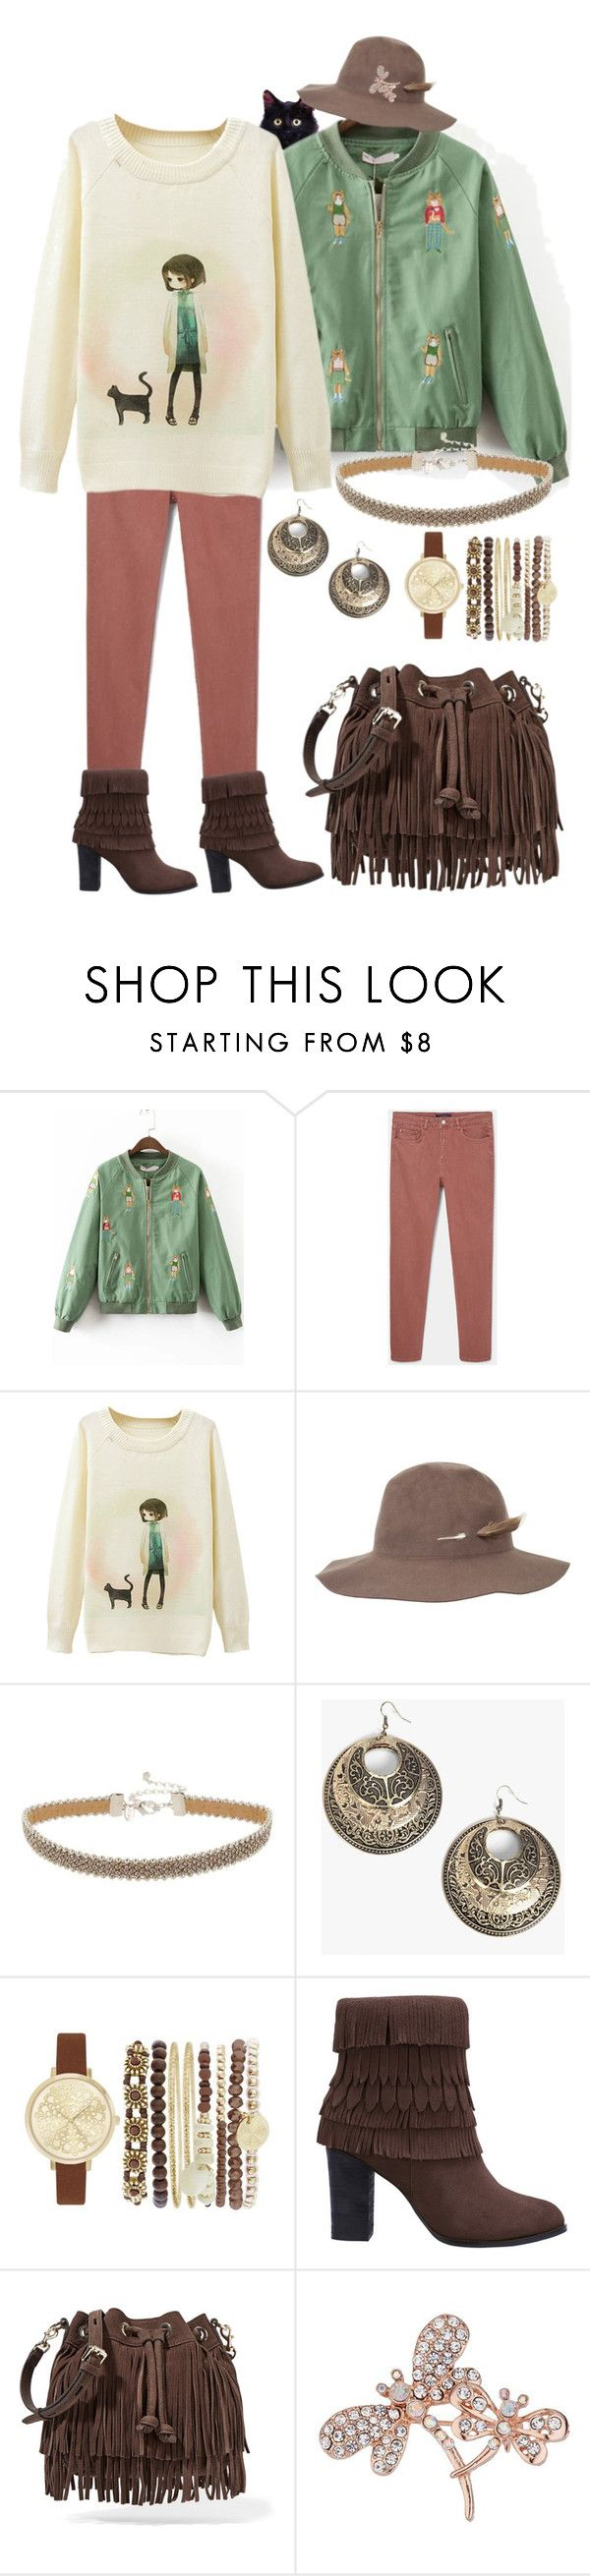 """""""Once there was an Amazing cat named Jewel."""" by ms-ironickel ❤ liked on Polyvore featuring Violeta by Mango, Brixton, Miss Selfridge, Boohoo, Jessica Carlyle, Rebecca Minkoff and Dorothy Perkins"""